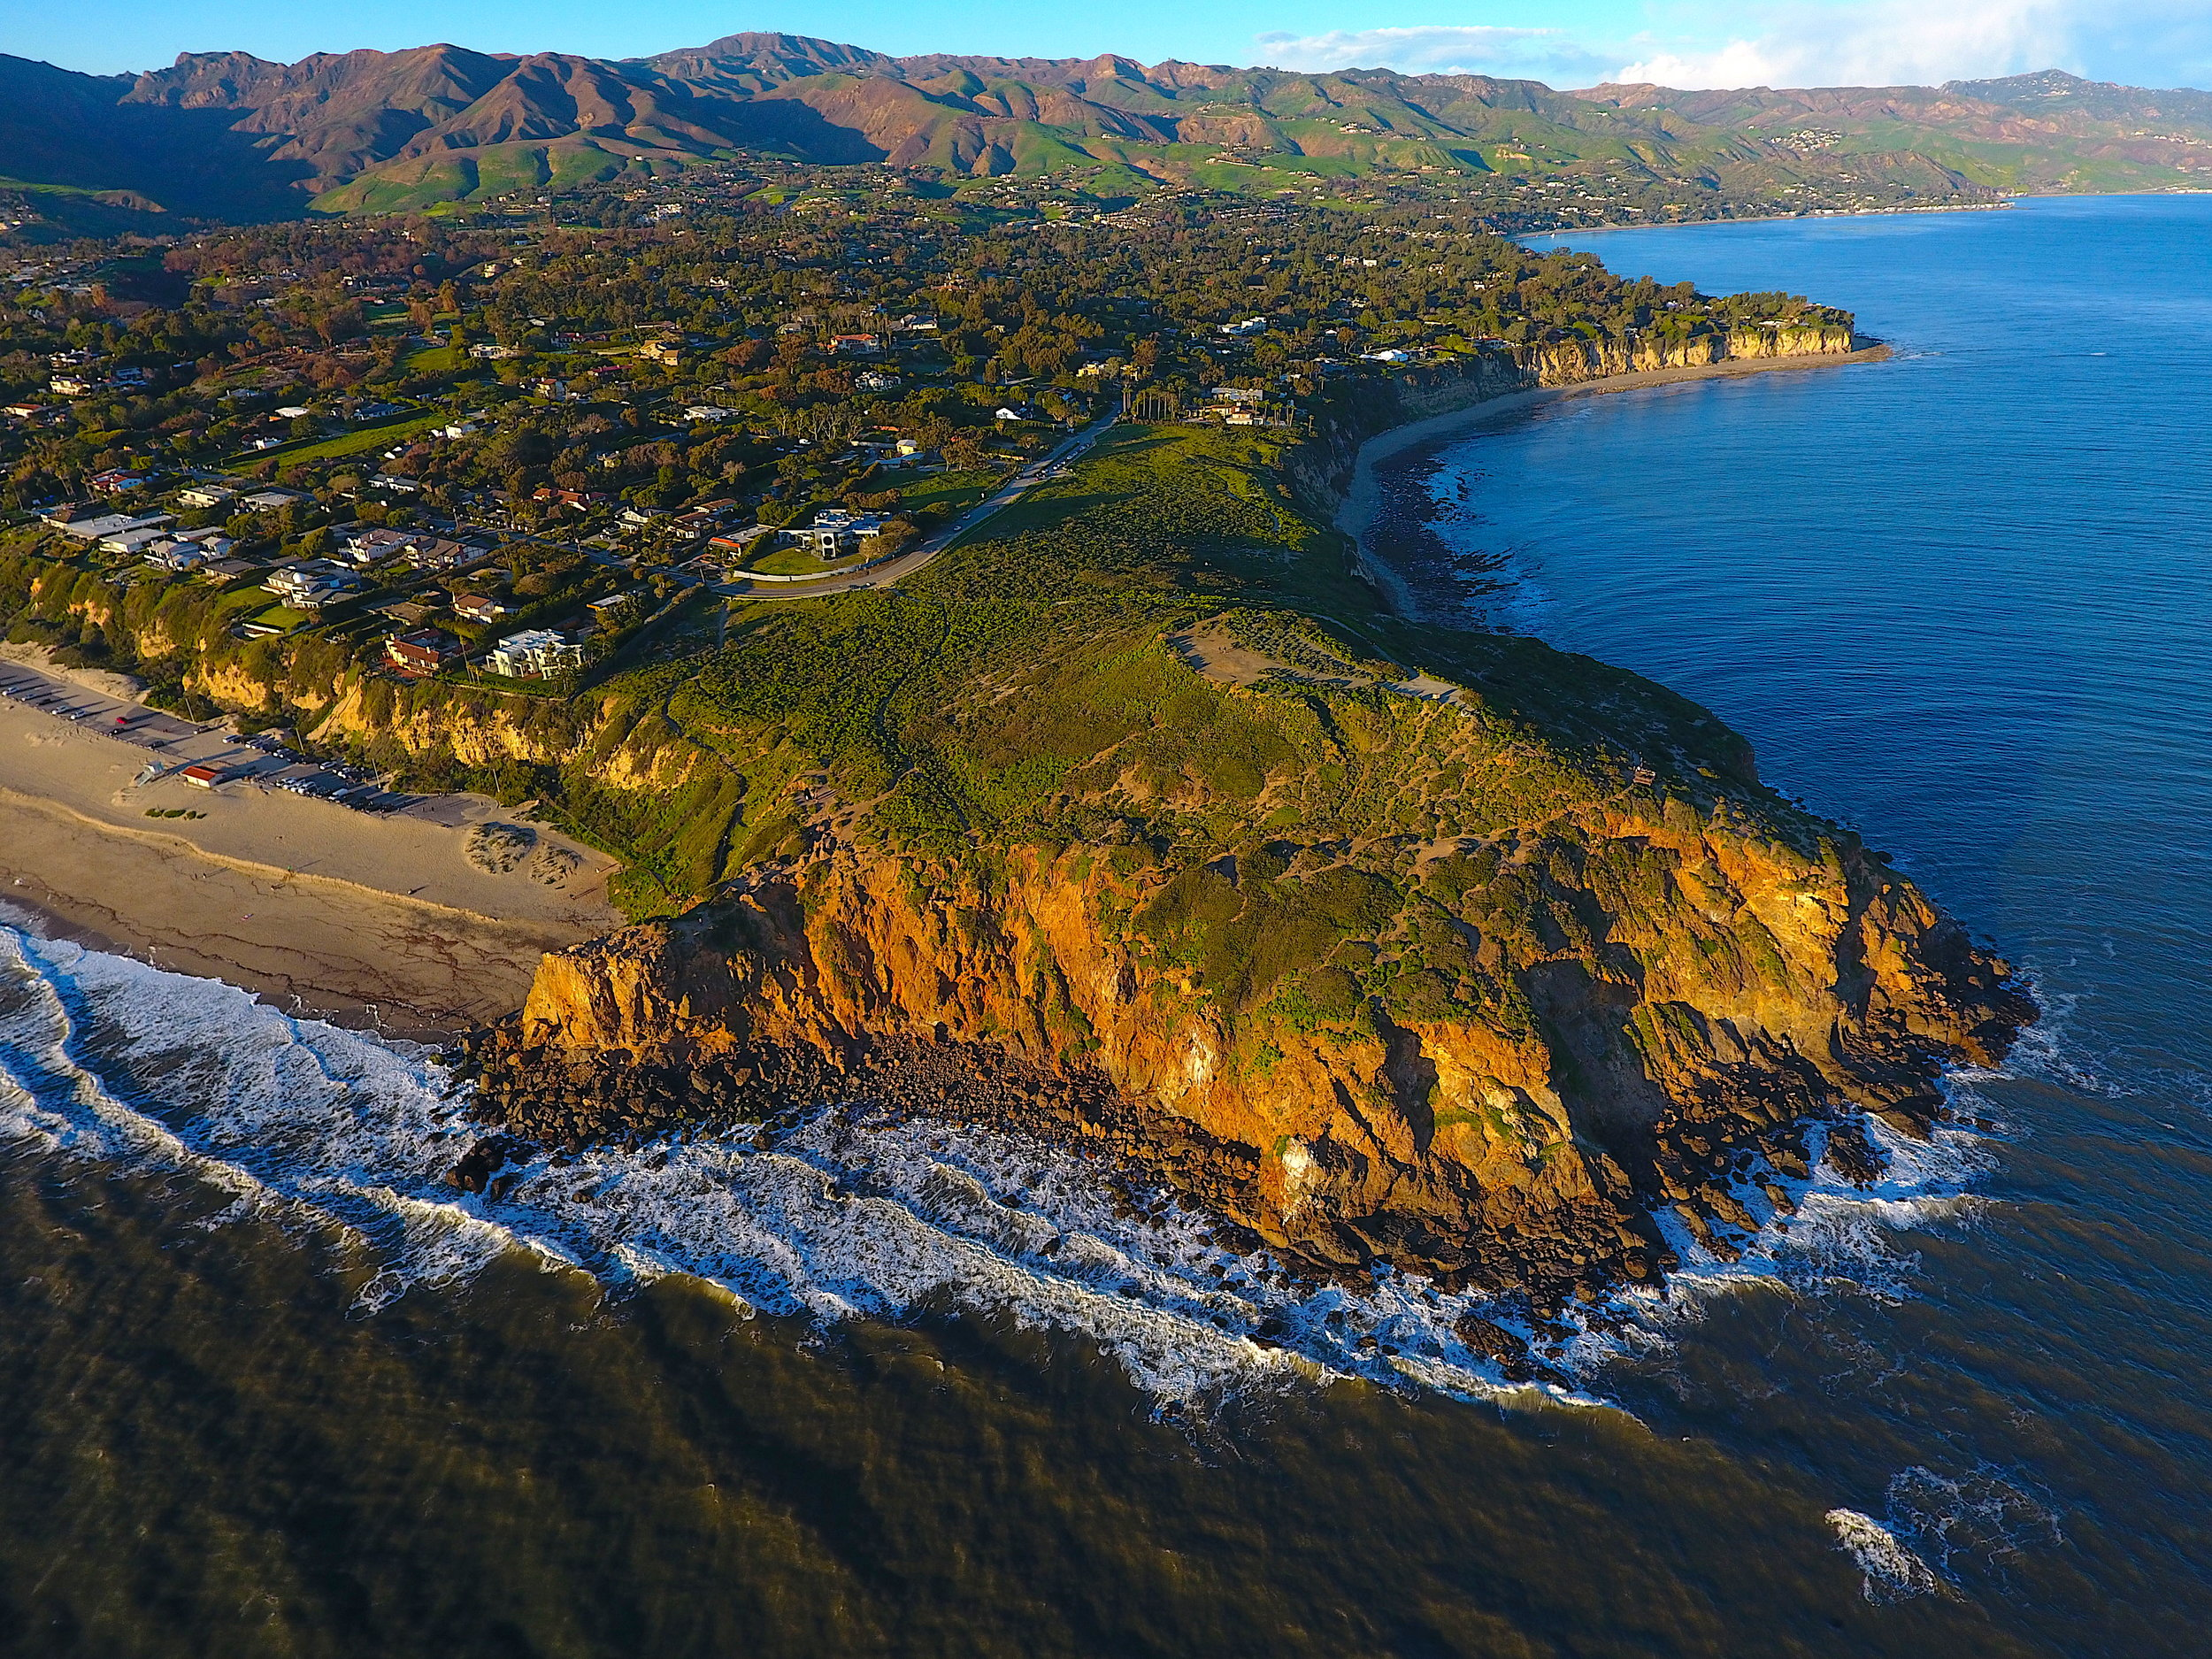 During World War II, the U.S. Army used the tip of Point Dume, known as the headlands, as an anti-aircraft artillery training area.